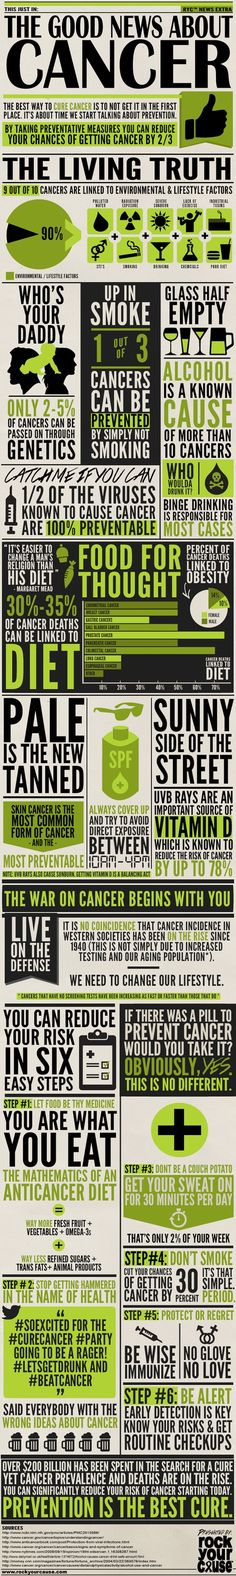 The Good News About Cancer [#Infographic]